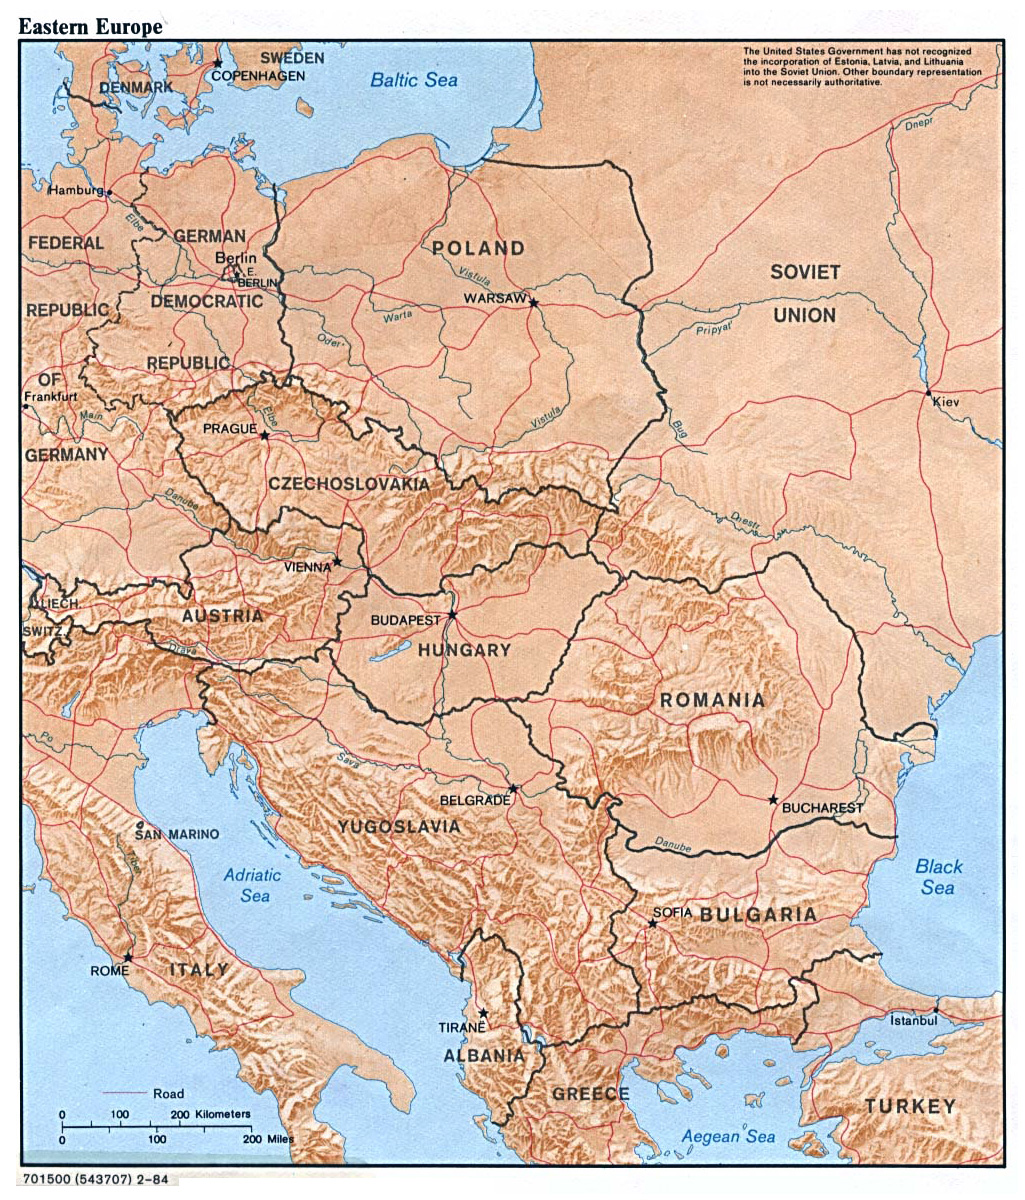 Map of Eastern Europe with Major Cities